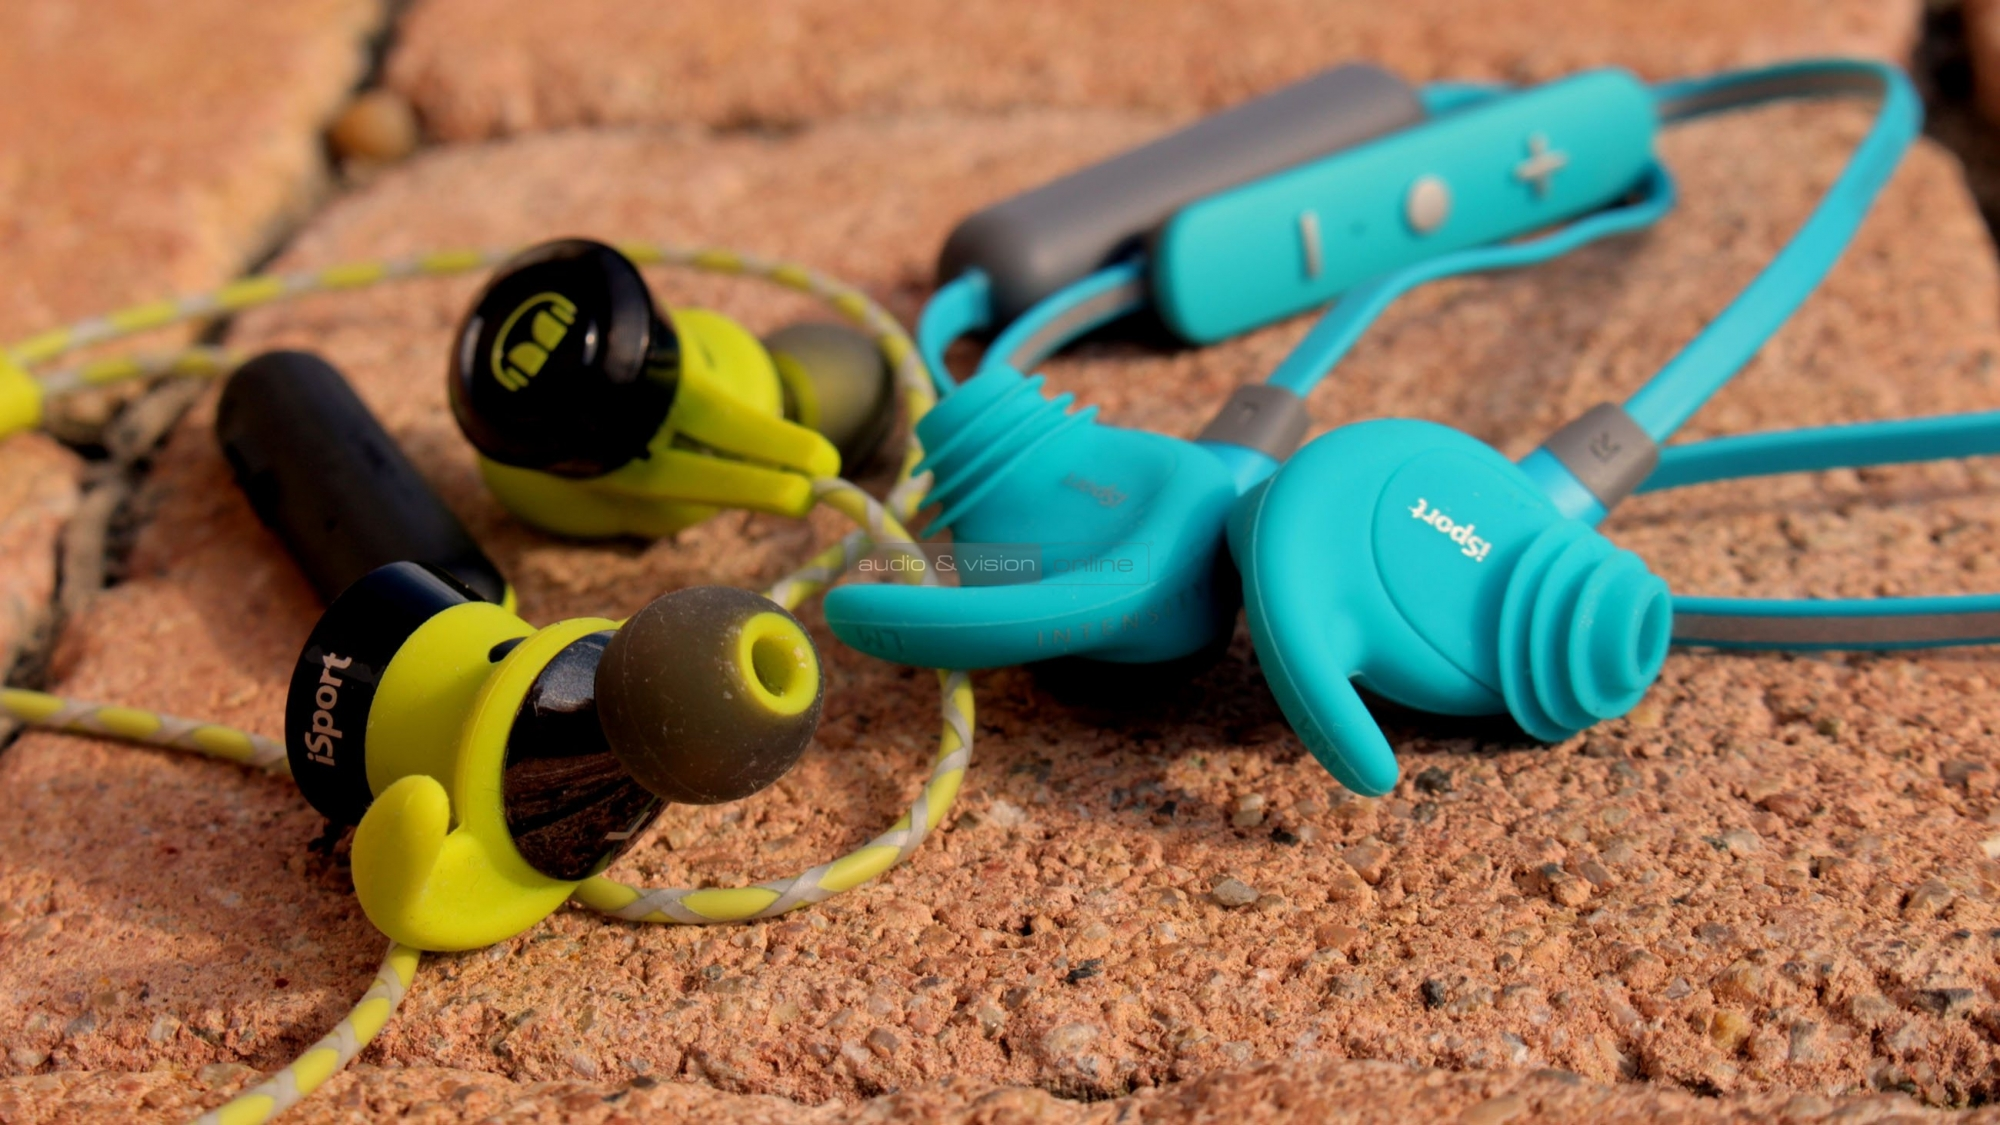 Monster iSport Intesity és iSport Victory Bluetooth sportfülhallgatók 6481196c1a